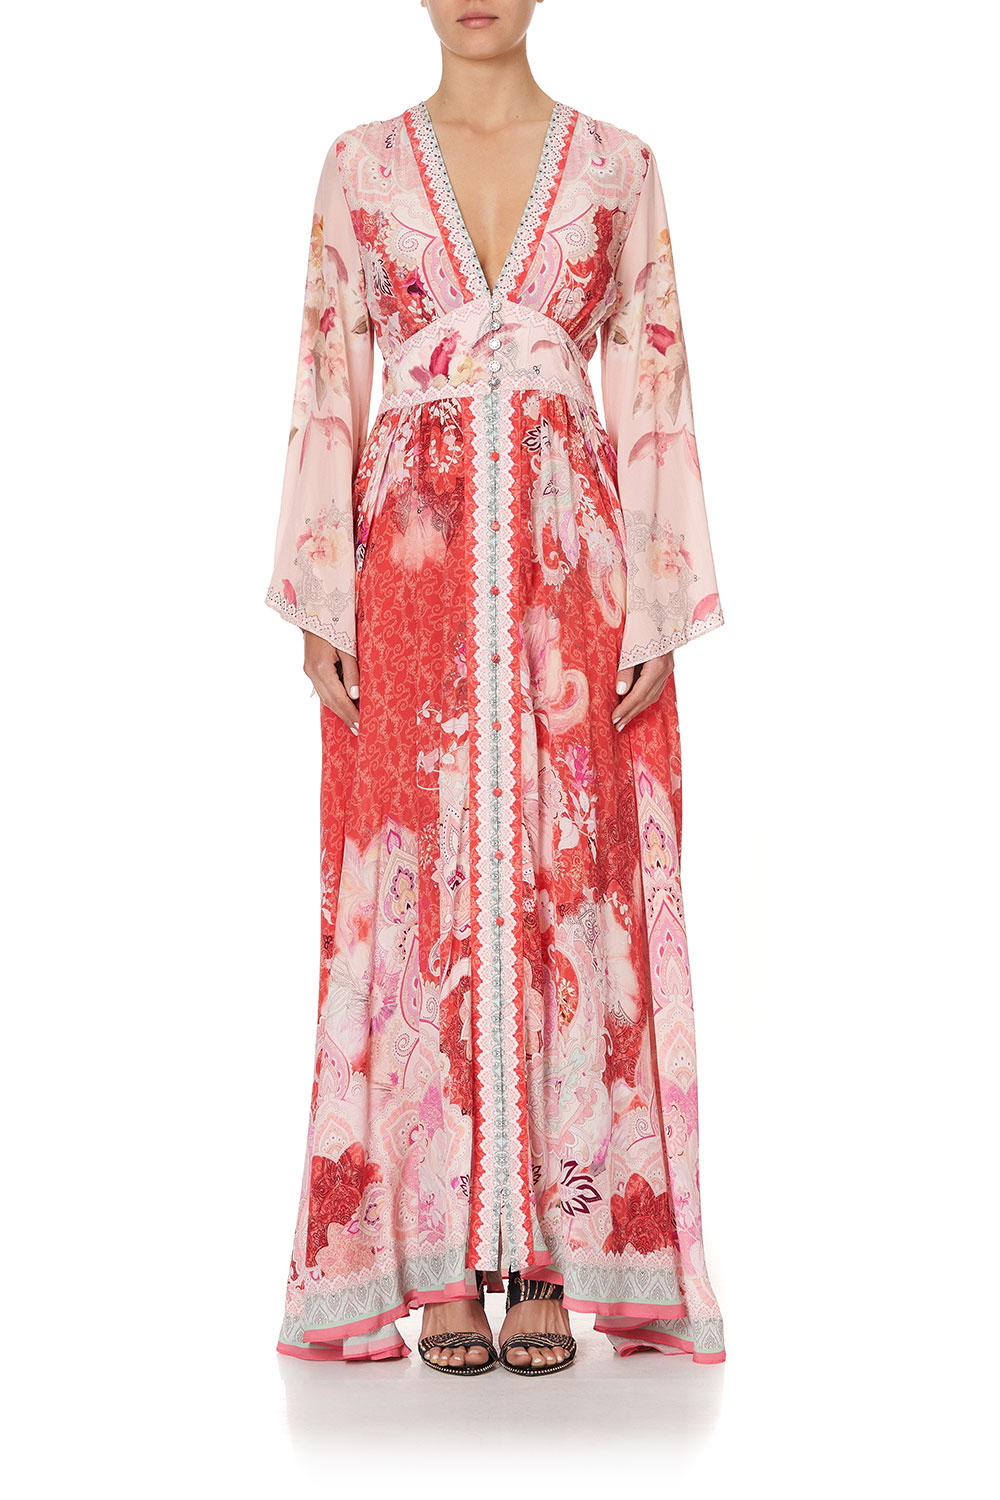 camilla_kimono_sleeve_dress_with_shirring_detail_palace_muse_5